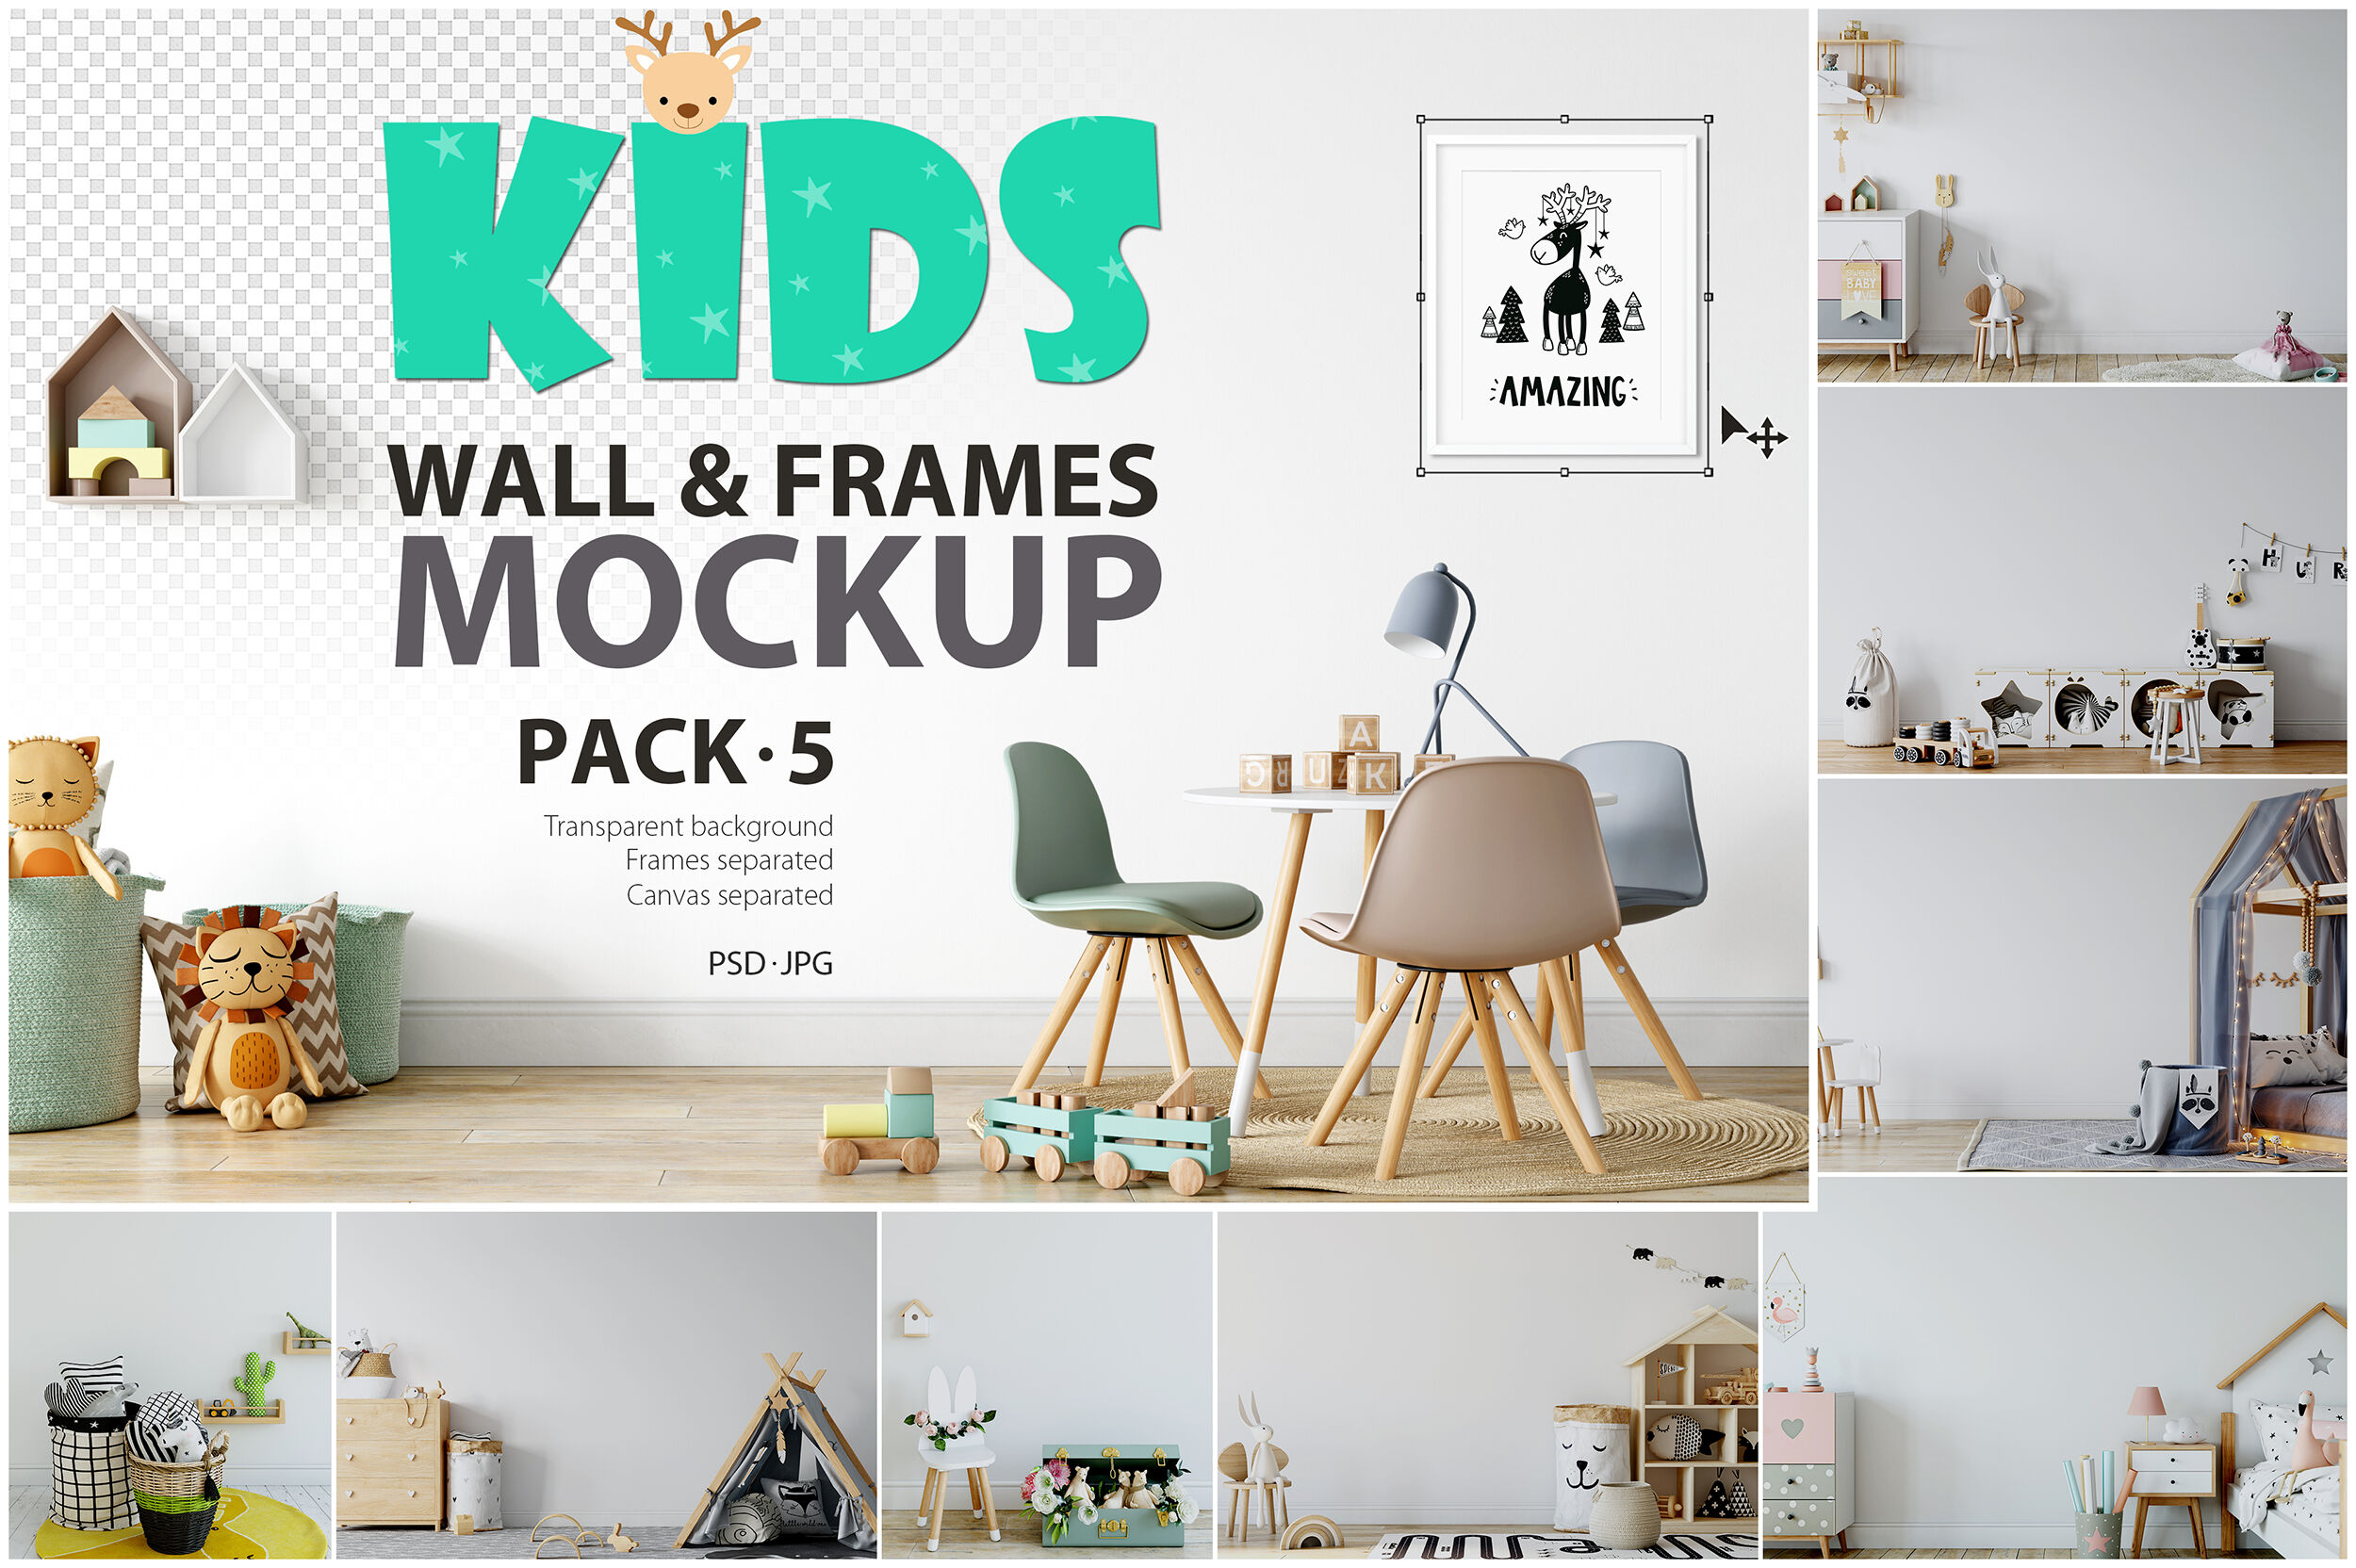 Download Magazine Mockup Free Psd Download Yellow Images